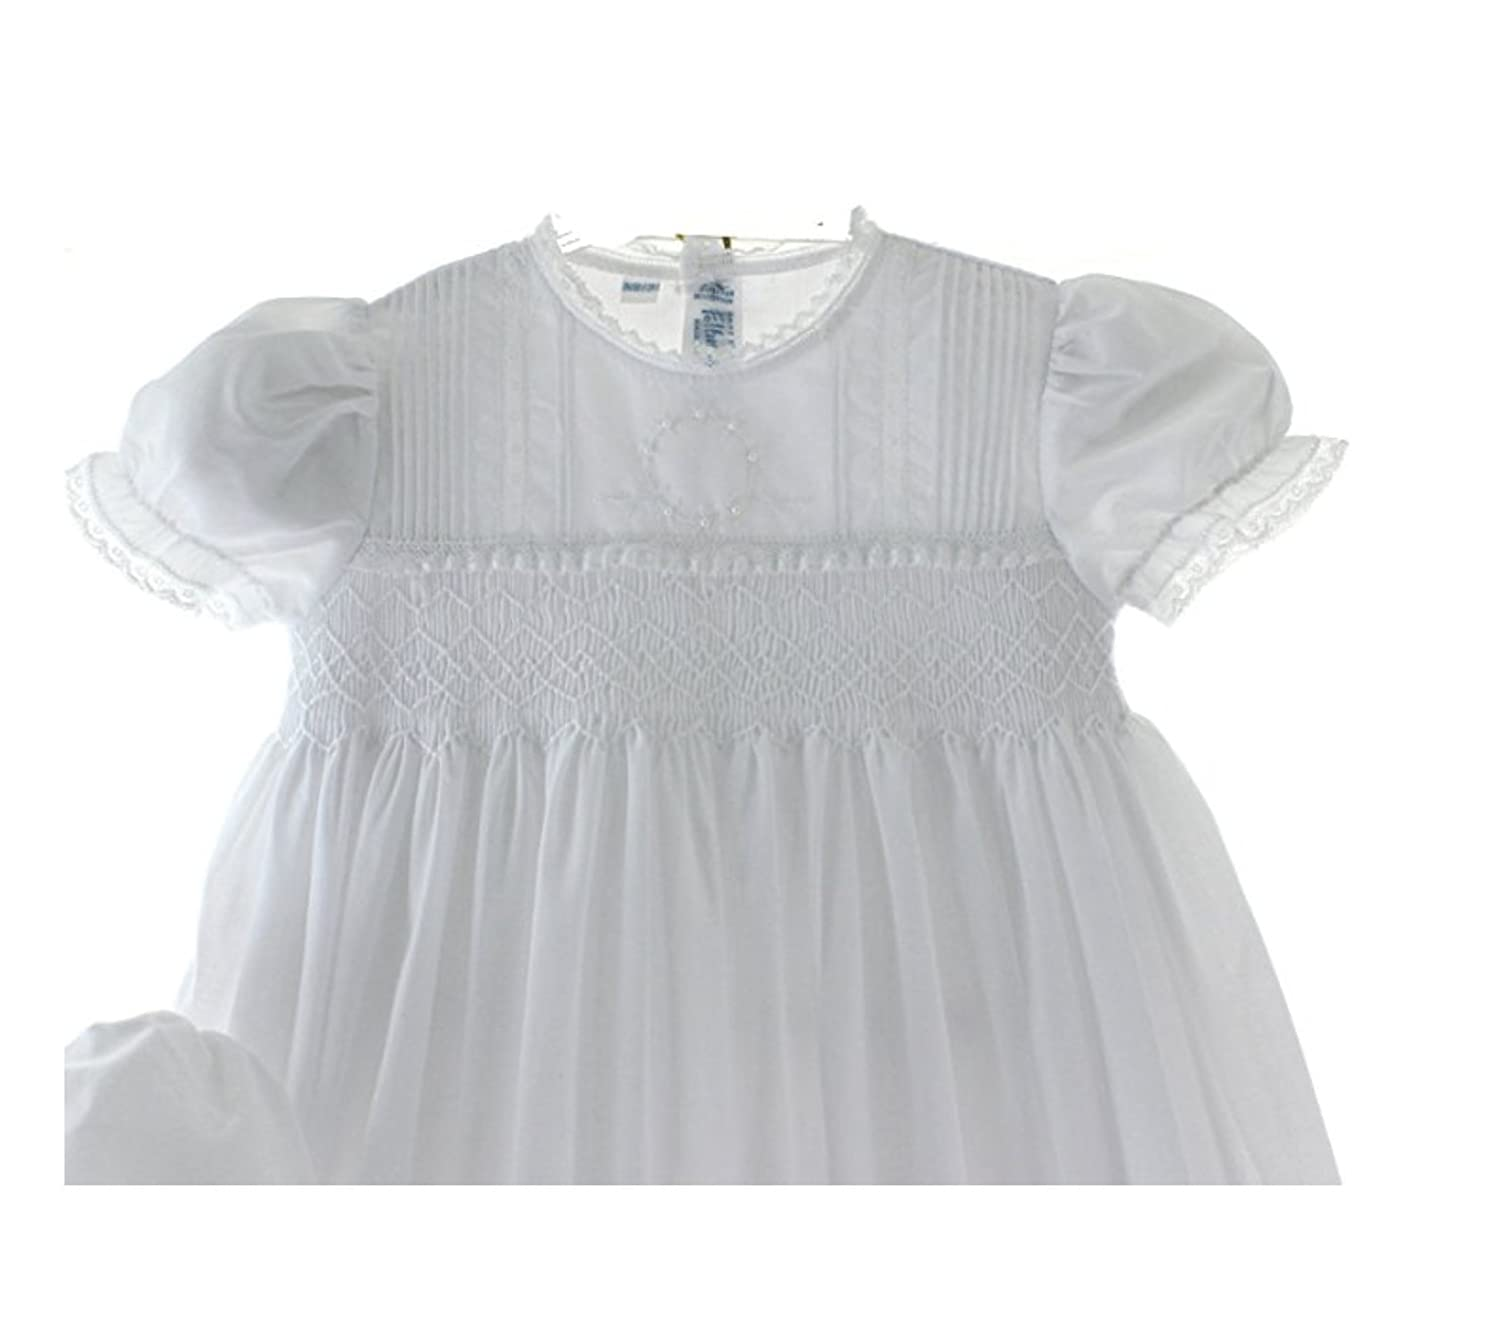 Girls White Smocked Christening Baptism Gown Bonnet Set with Pearls